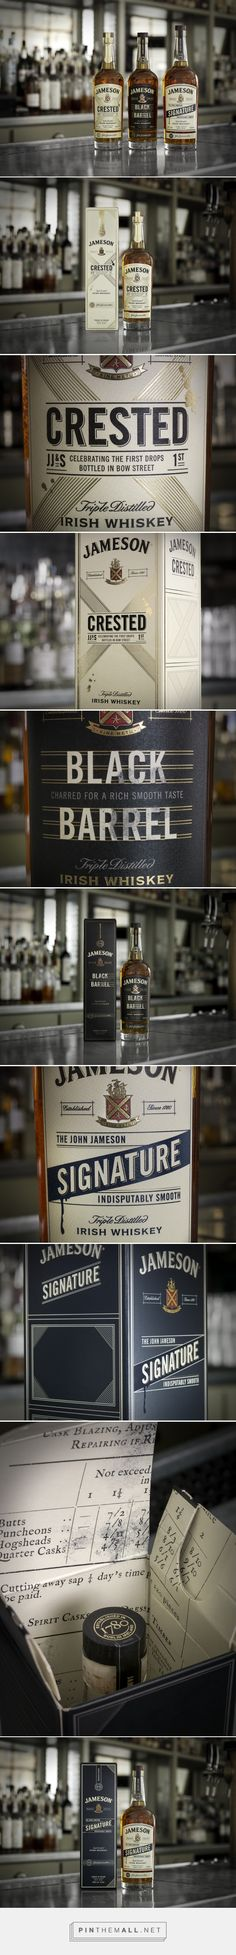 Jameson Whiskey – Revitalizing Jameson's Classic Reserve Range - Packaging of the World - Creative Package Design Gallery - http://www.packagingoftheworld.com/2017/06/jameson-whiskey-revitalizing-jamesons.html